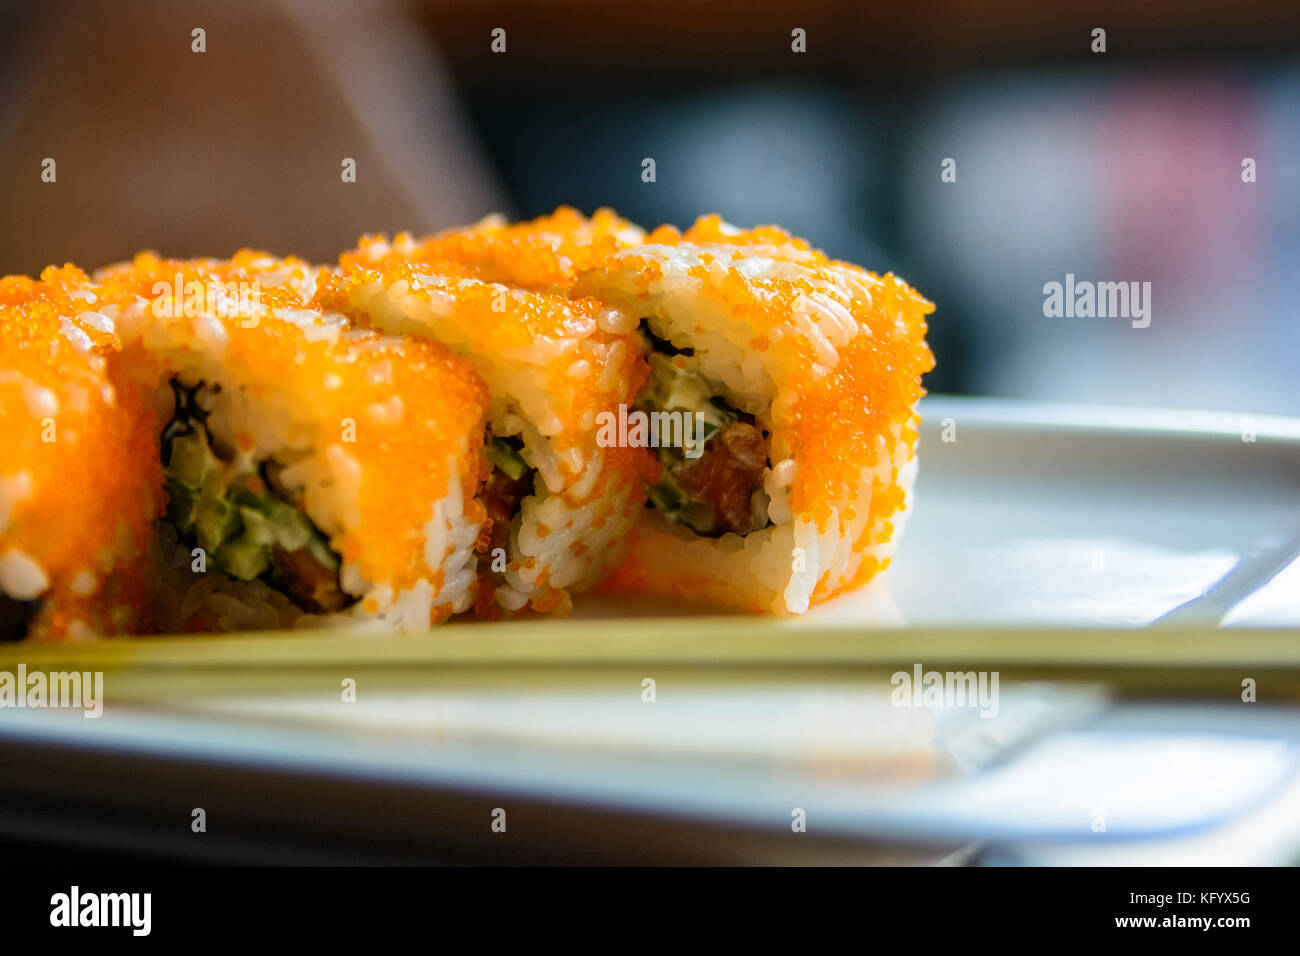 Close up tasty Japanese rolls on plate - Stock Image